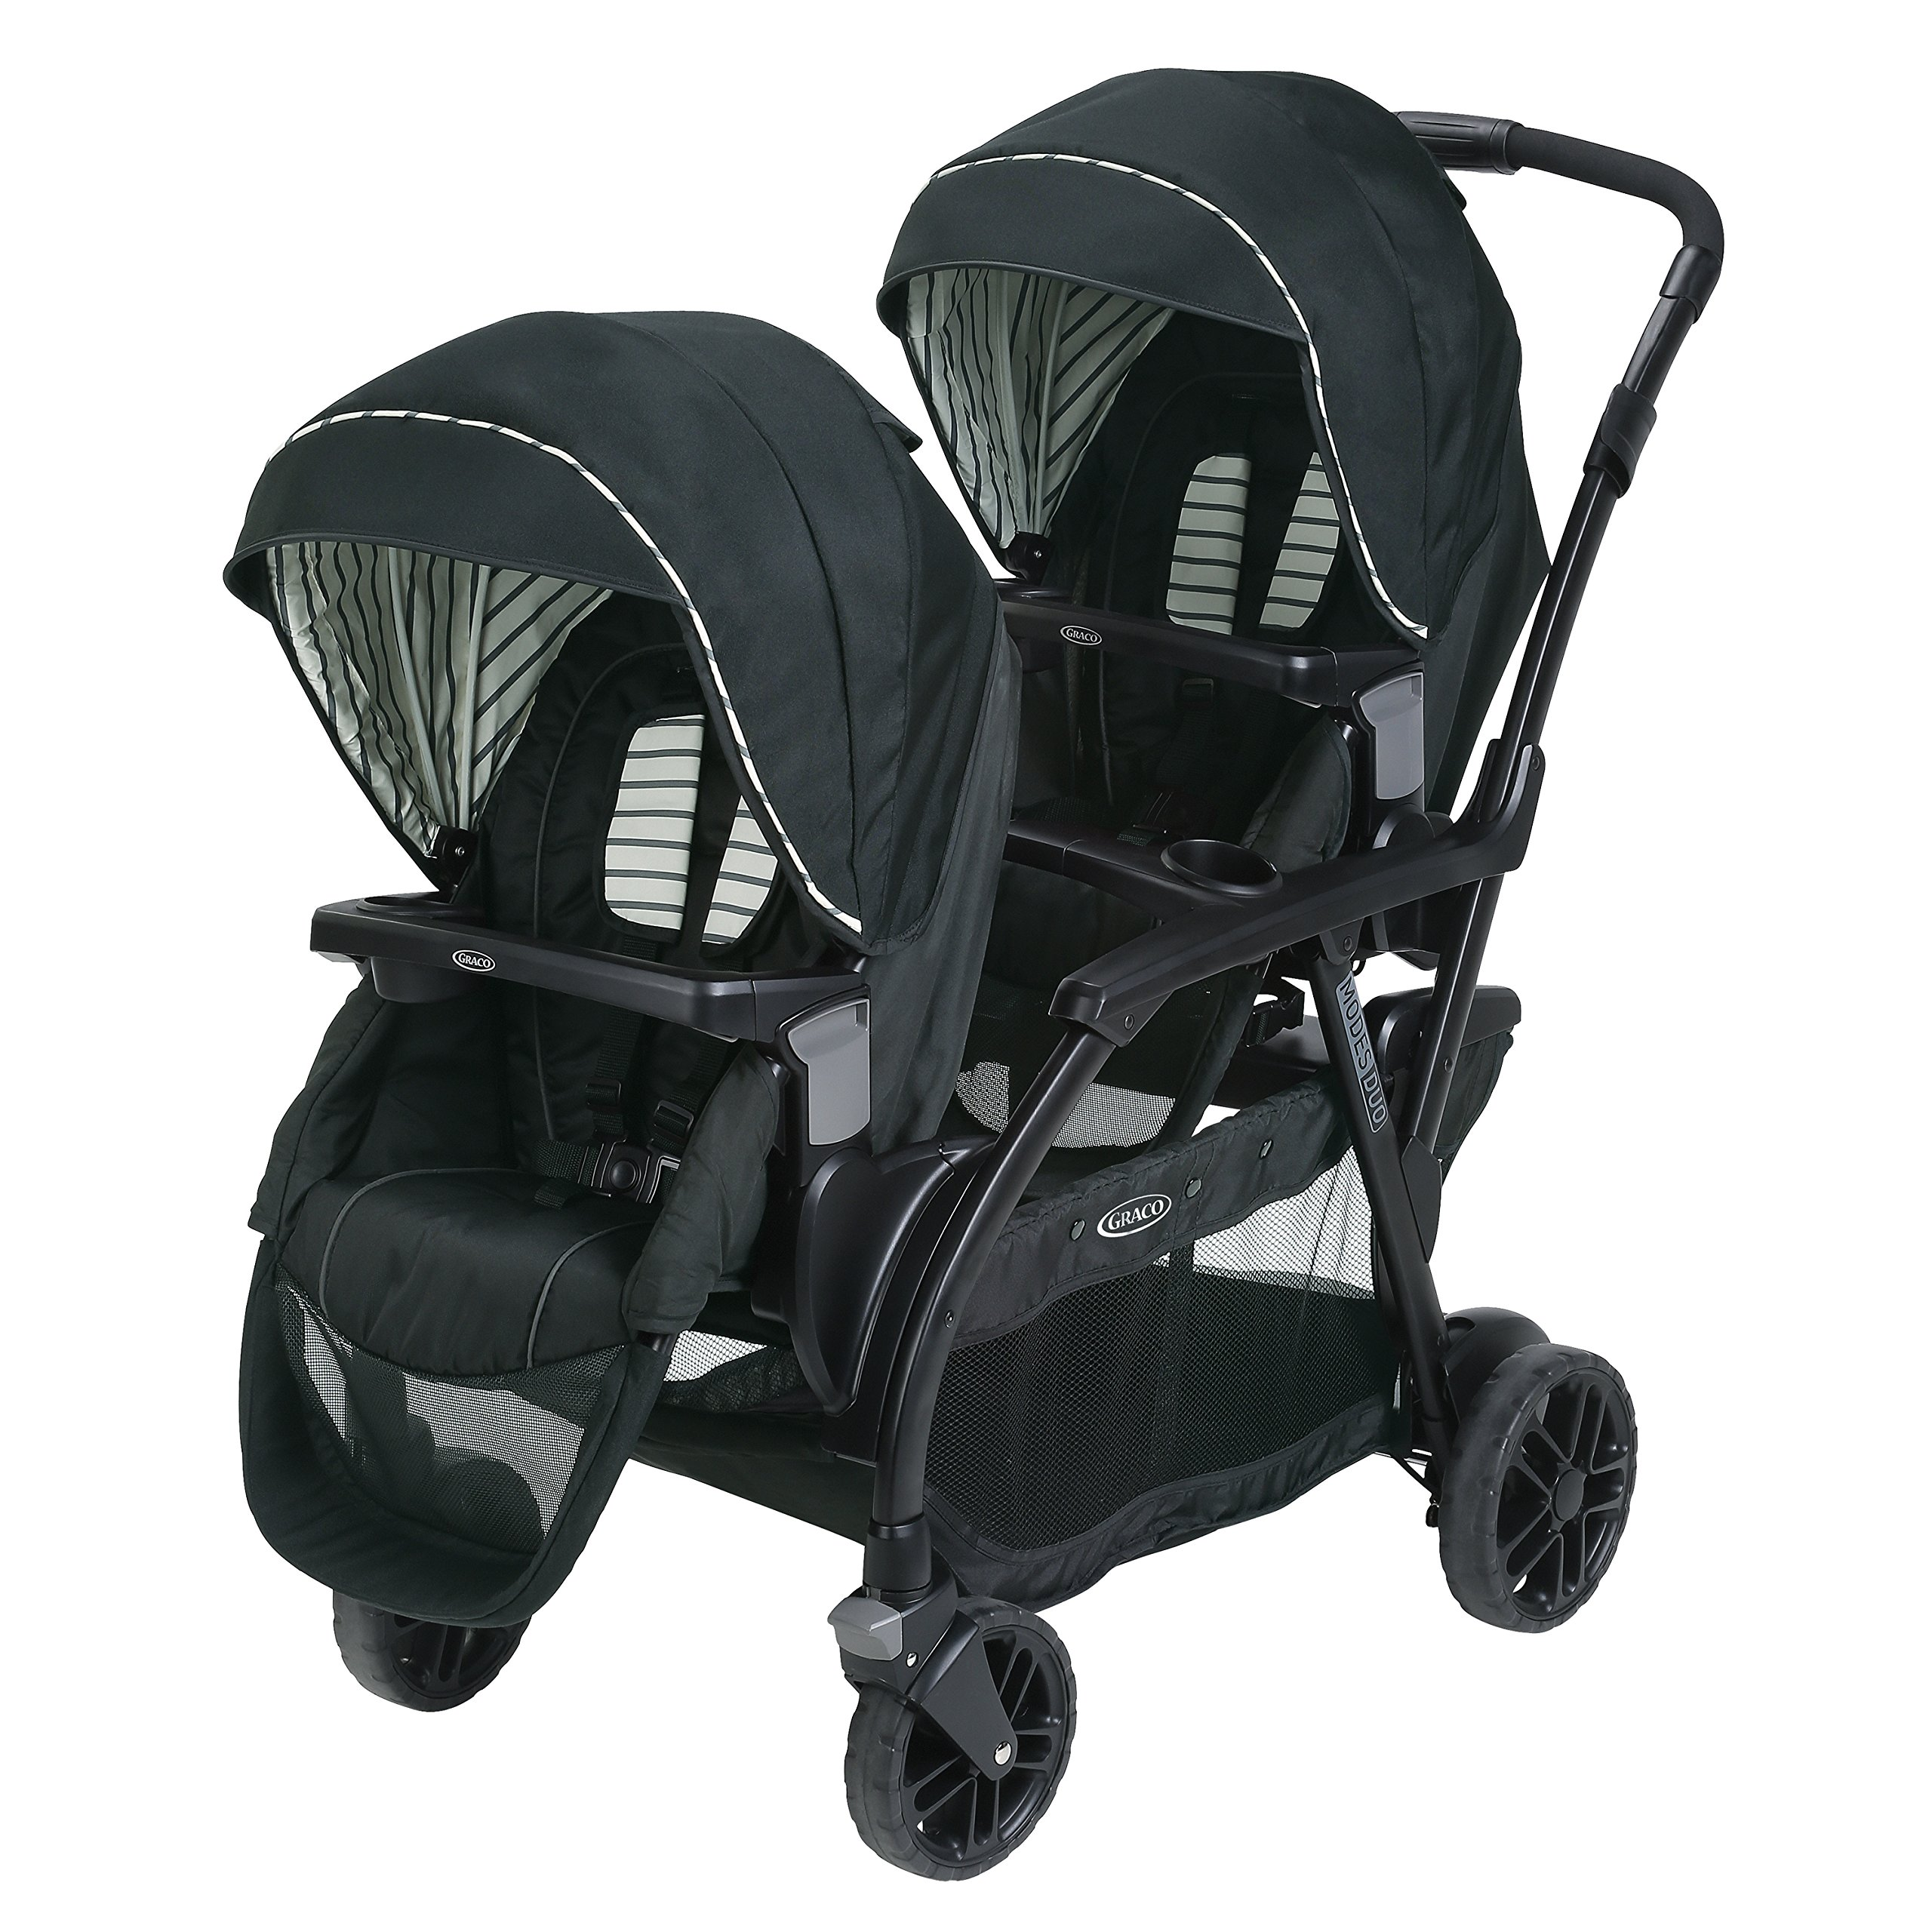 Graco Graco Modes Stroller, Duo Double, Holt